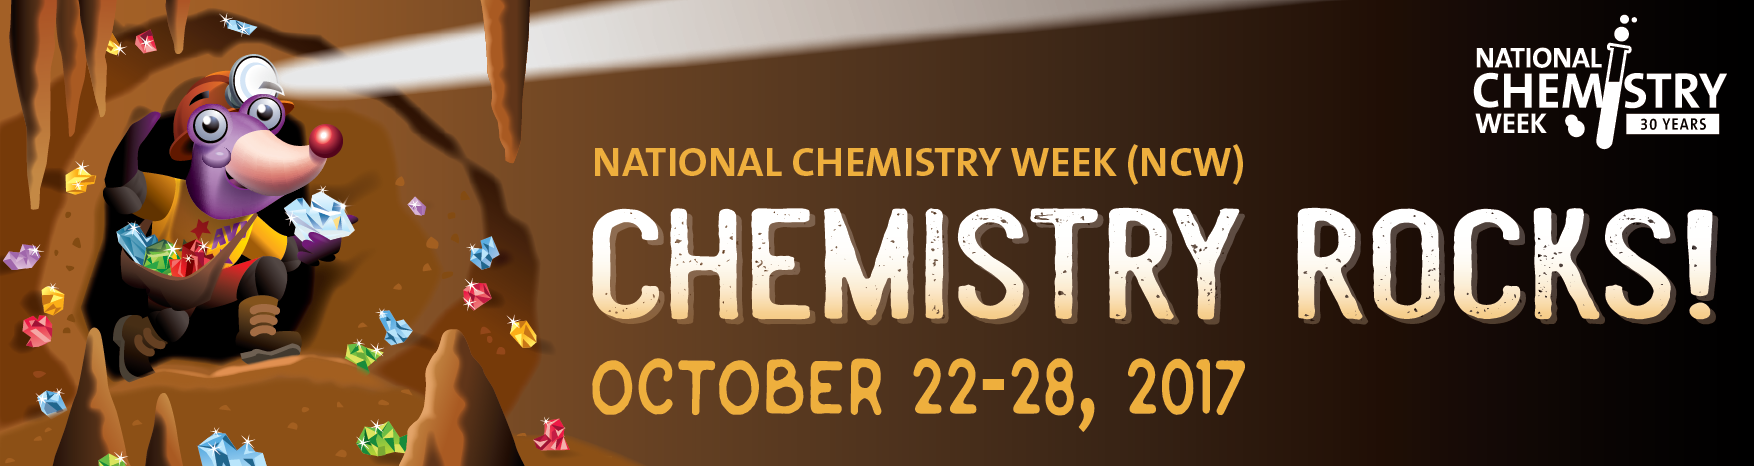 National Chemistry Week 2017 logo banner